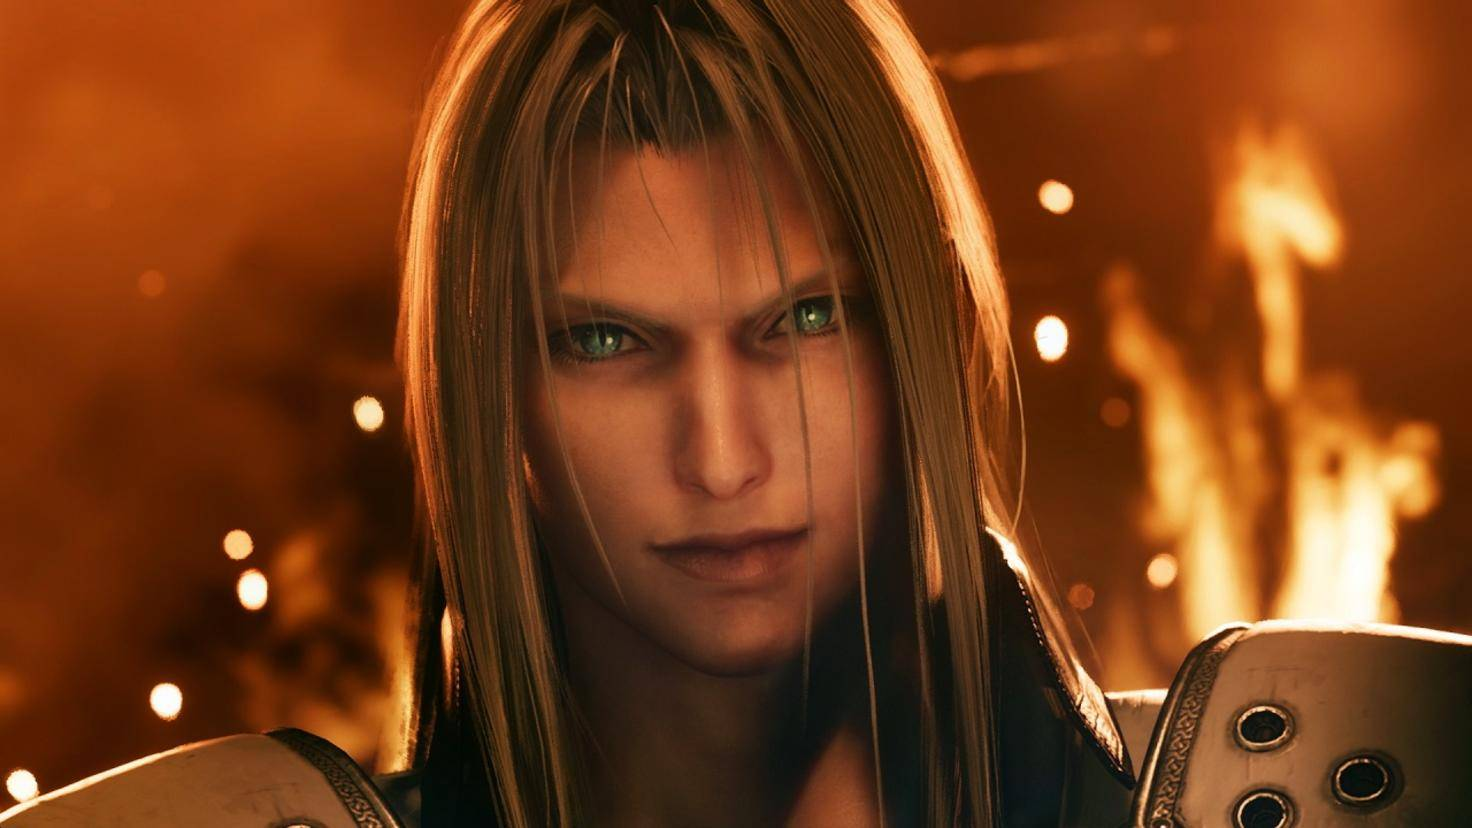 Villain Sephiroth has only appeared in one video sequence so far.